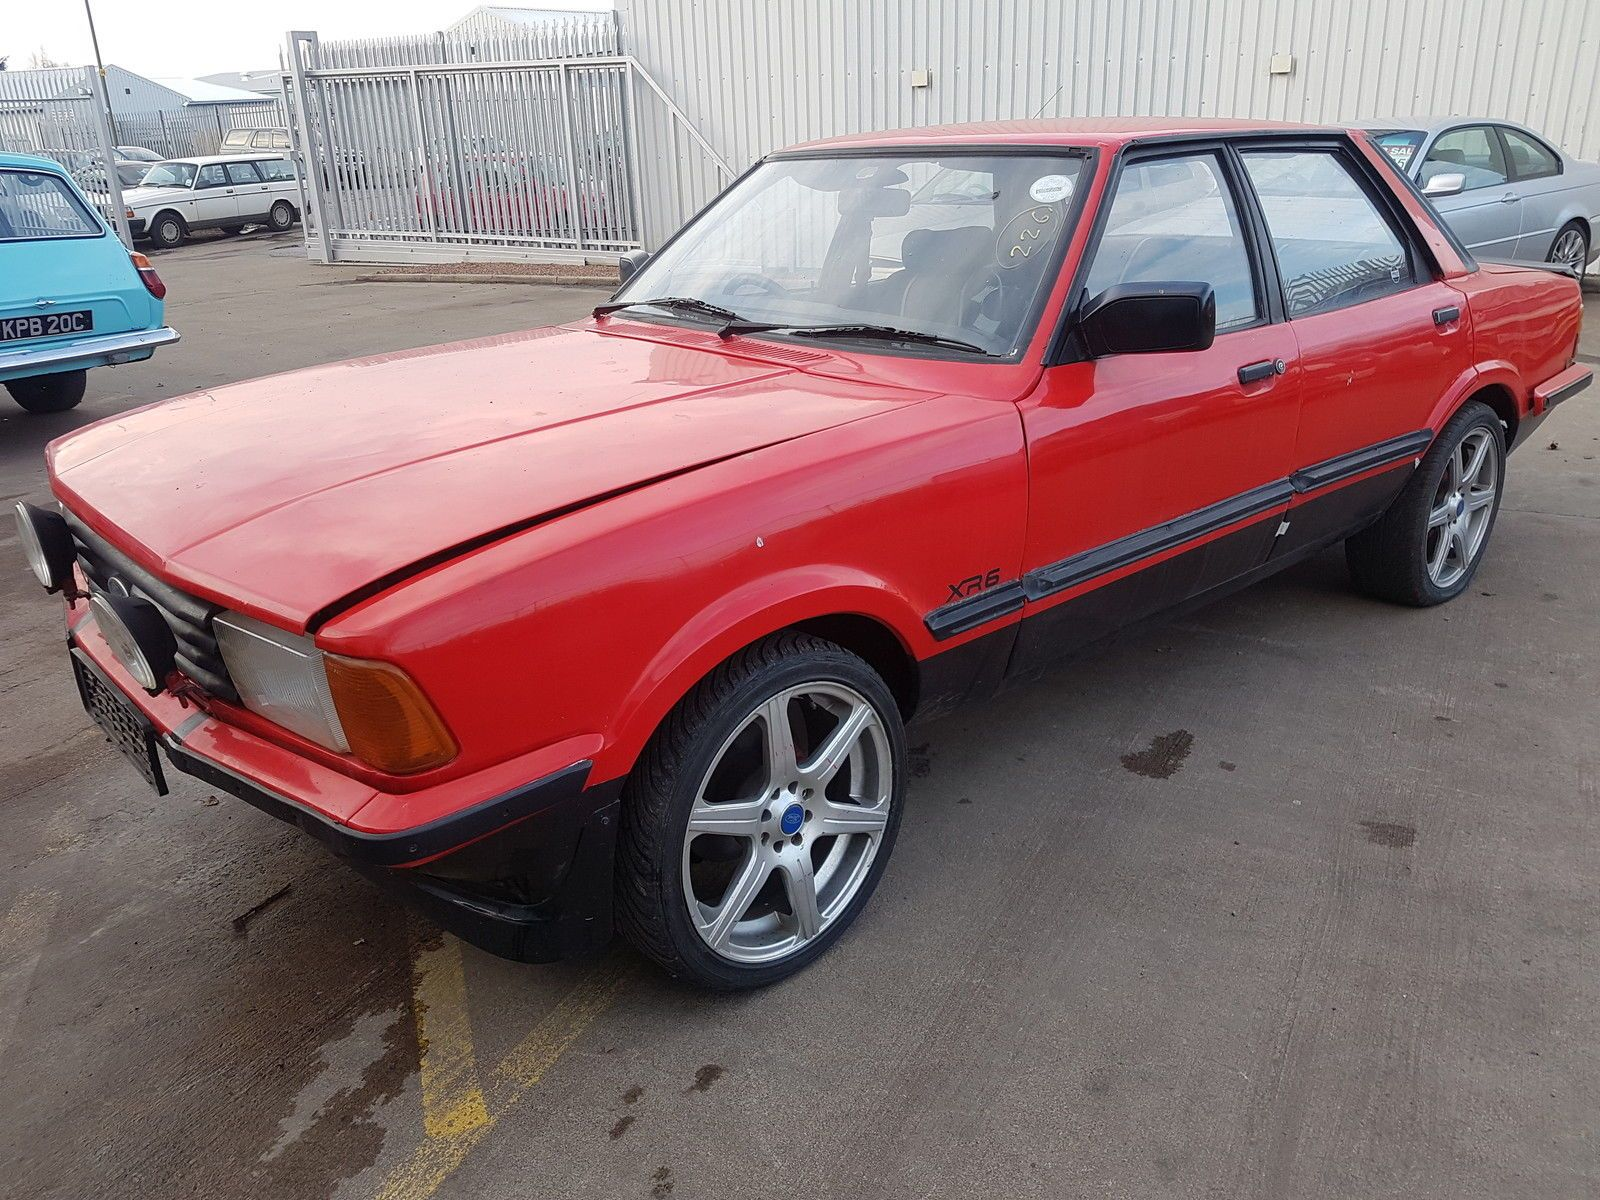 Ford Cortina 3 0 Xr6 Project See Ebay Listing Fordcortina Xr6